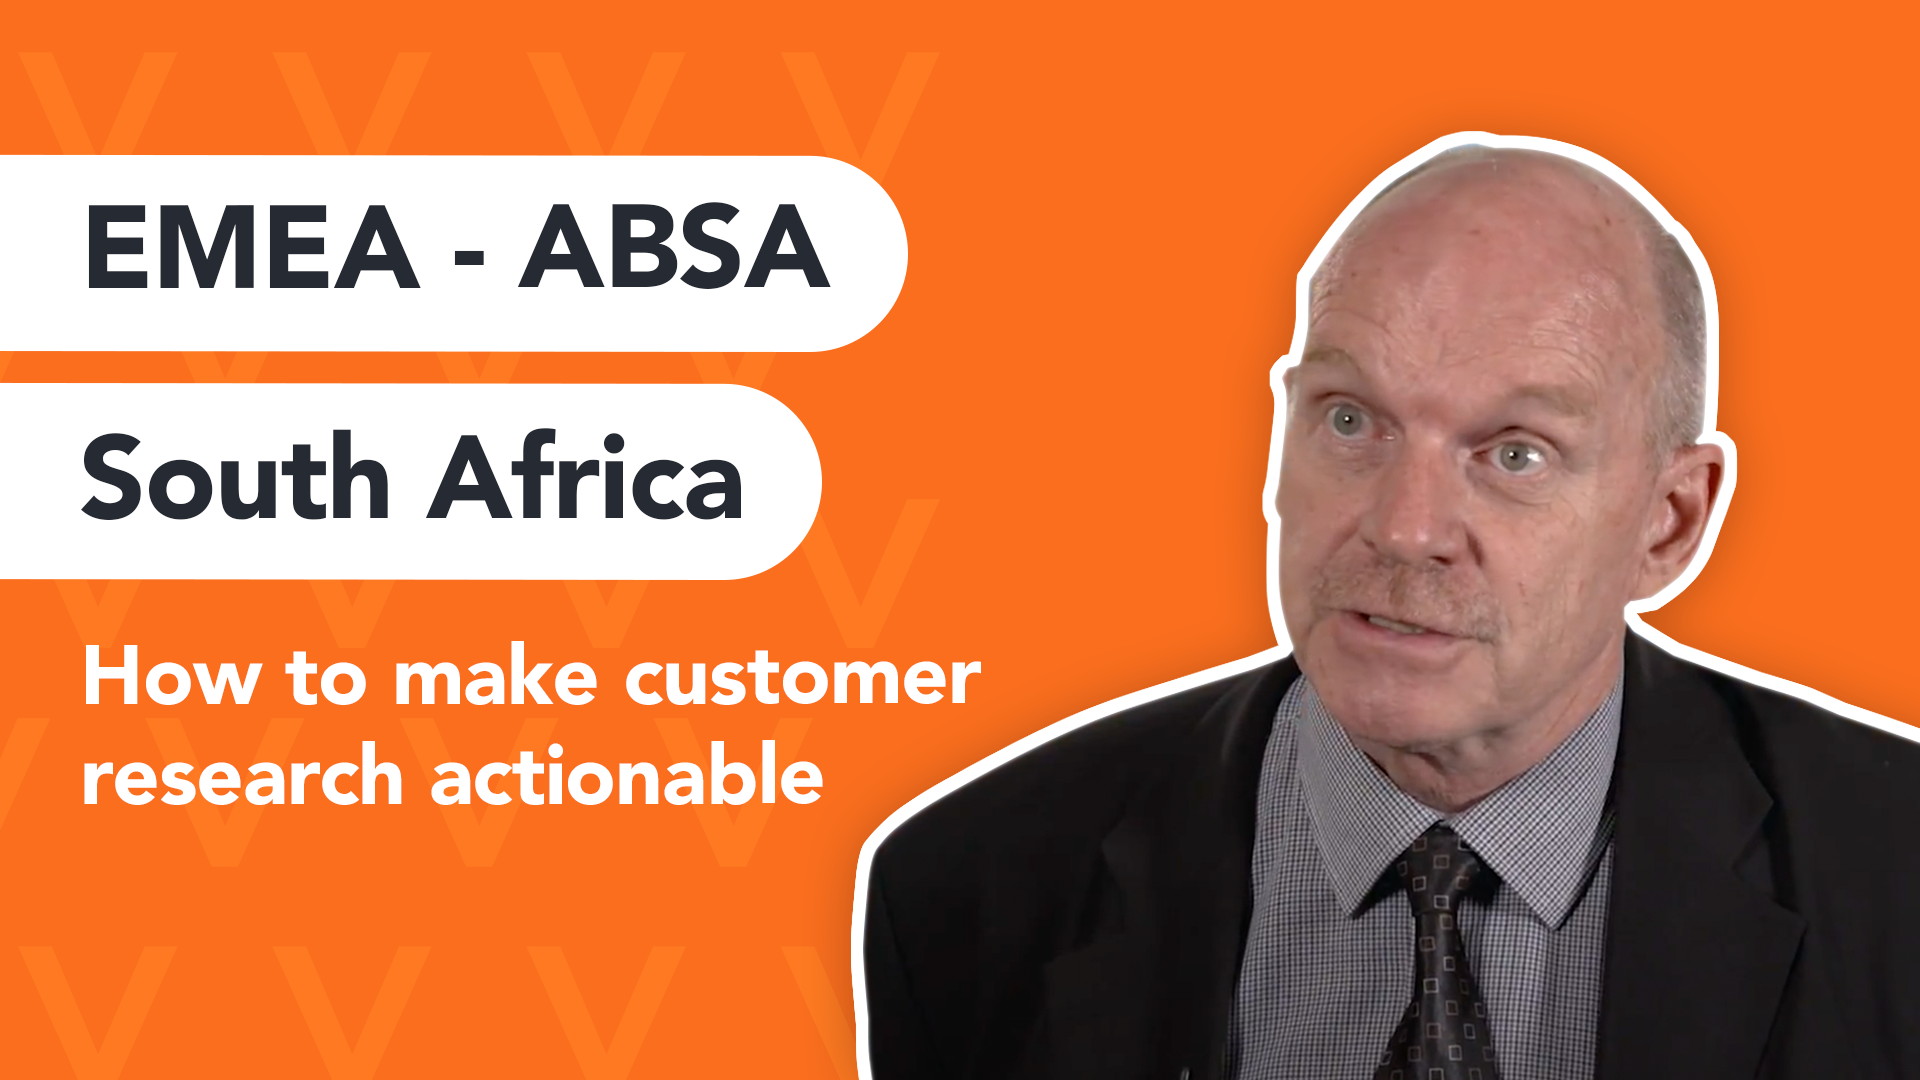 EMEA - ABSA - South Africa - Customer Video Testimonial